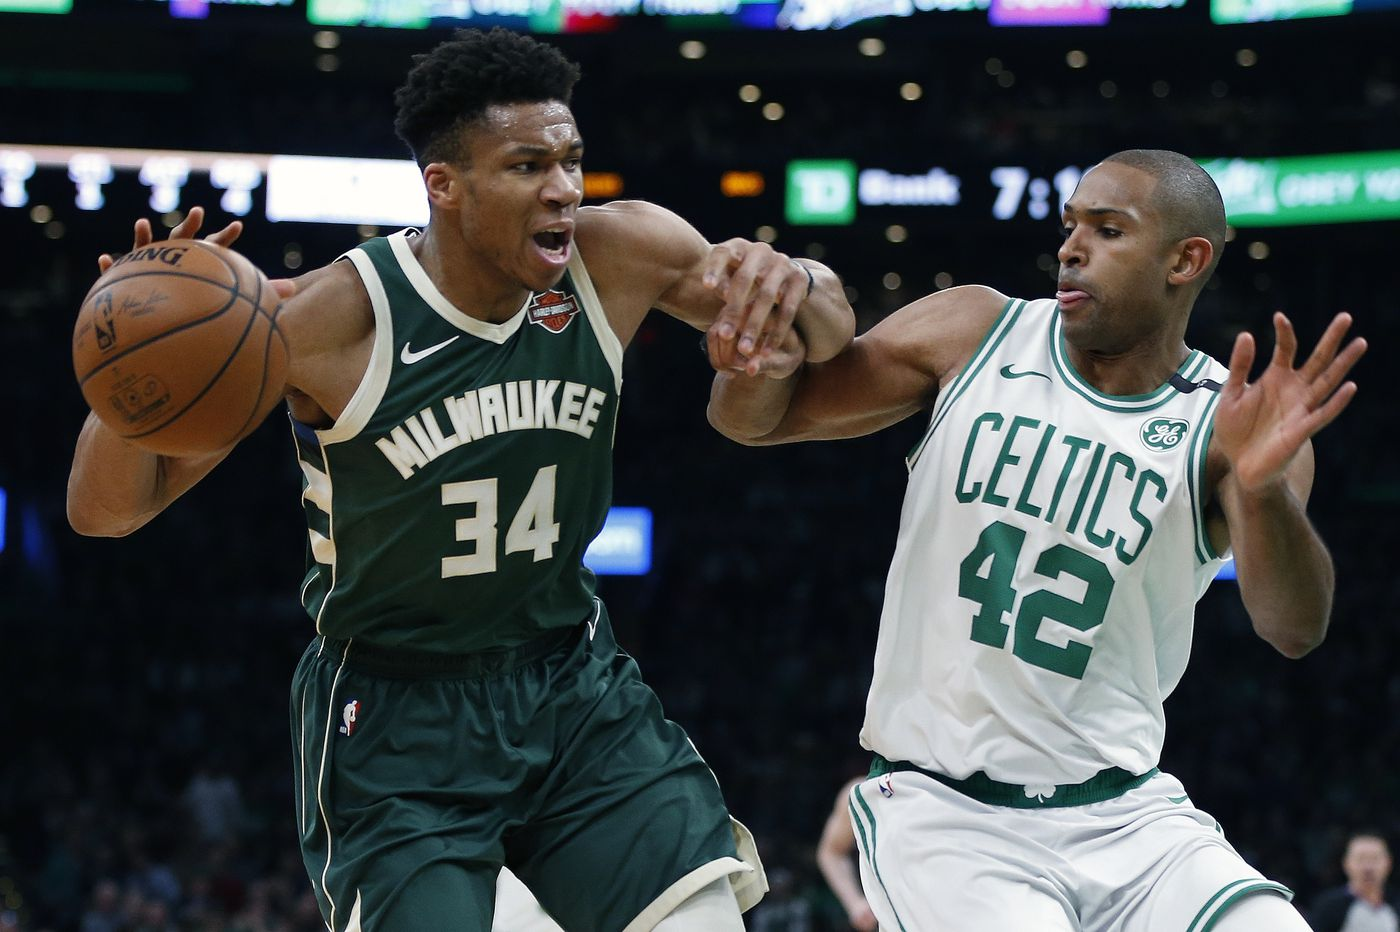 Bucks beat Celtics to advance to Eastern Conference final